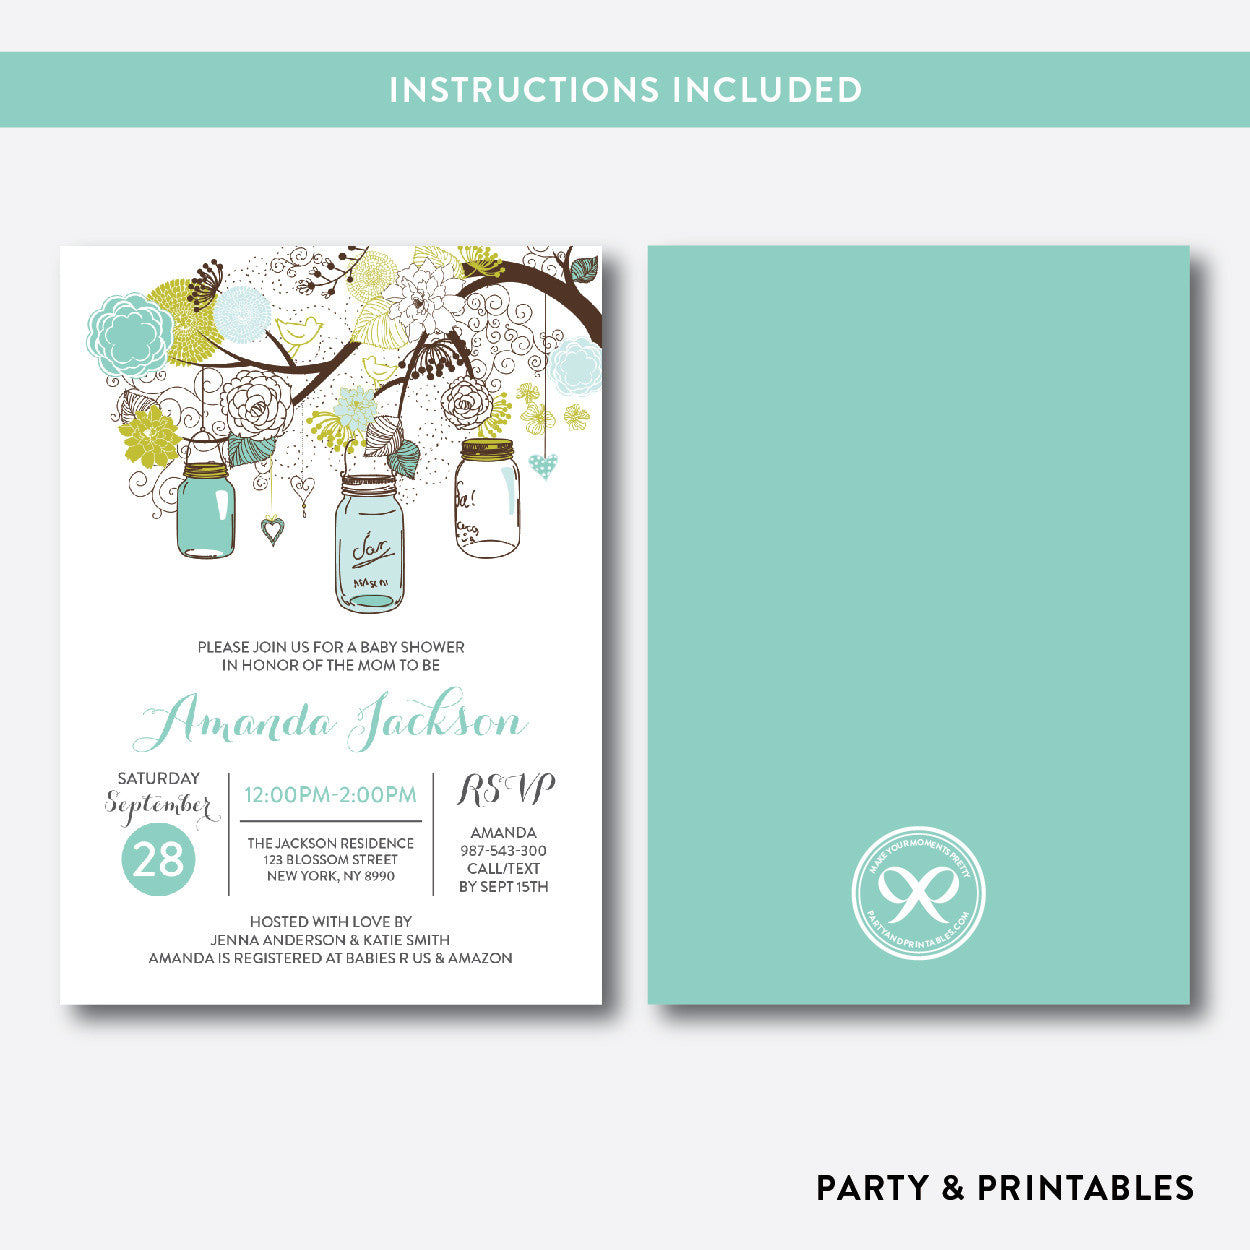 Floral Mason Jar Baby Shower Invitation / Editable / Instant Download (SBS.88), invitation - Party and Printables